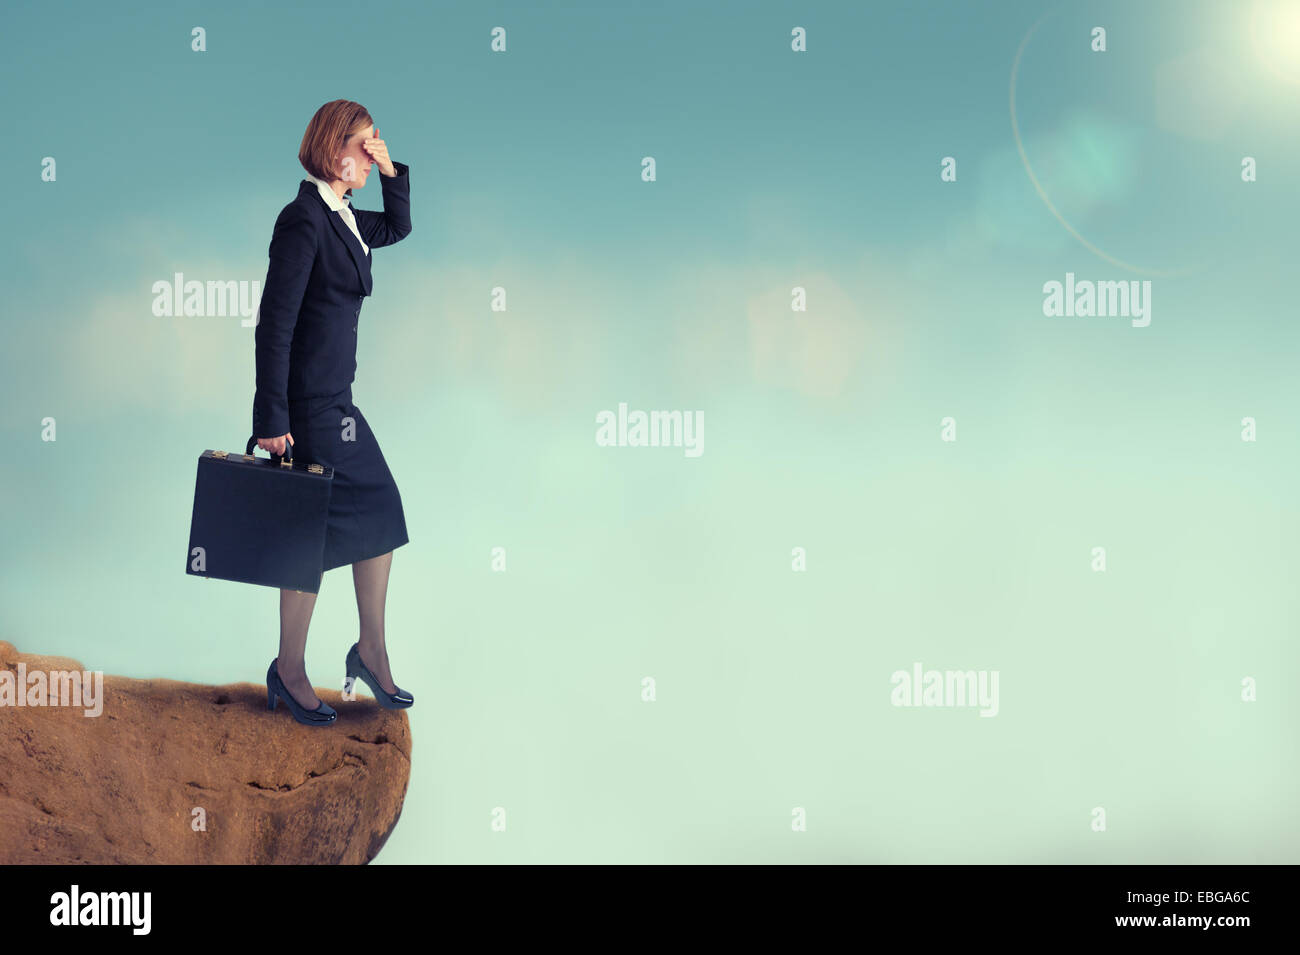 businesswoman on the edge of a cliff look before you leap business concept - Stock Image